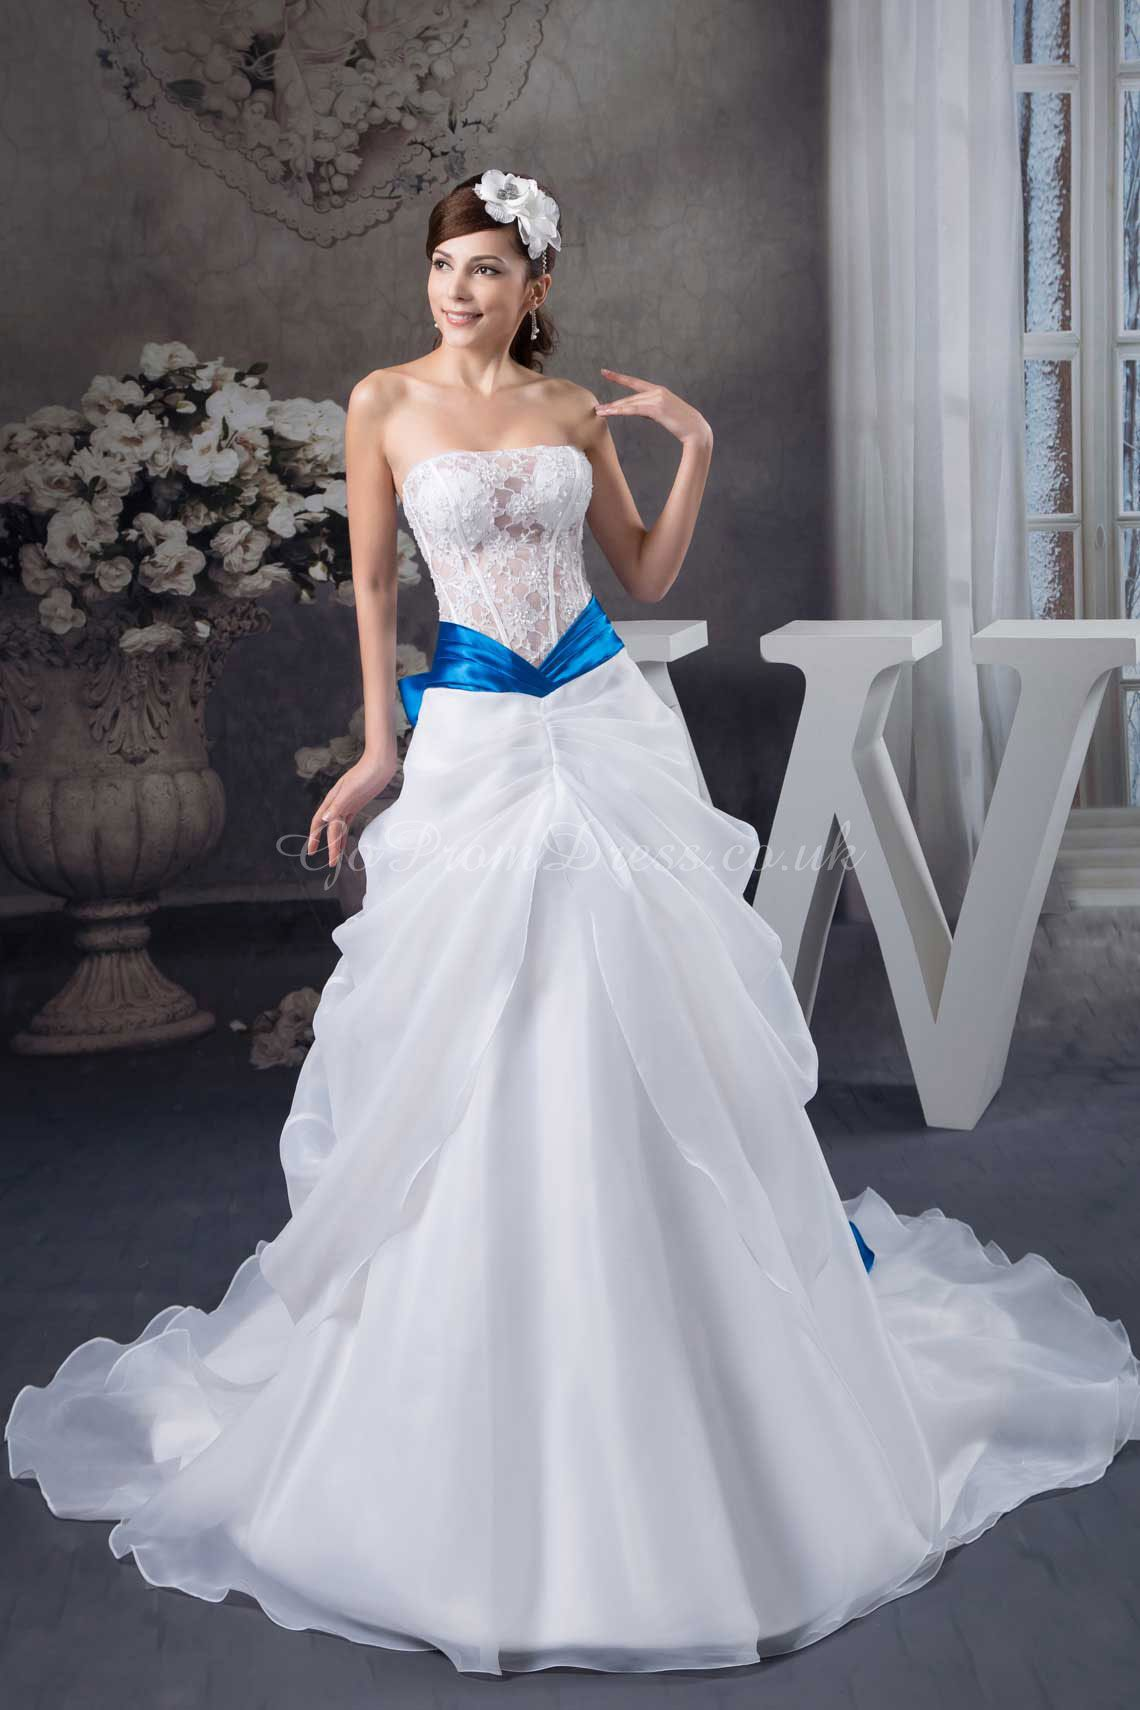 Short White Wedding Dresses With Sleeves 2